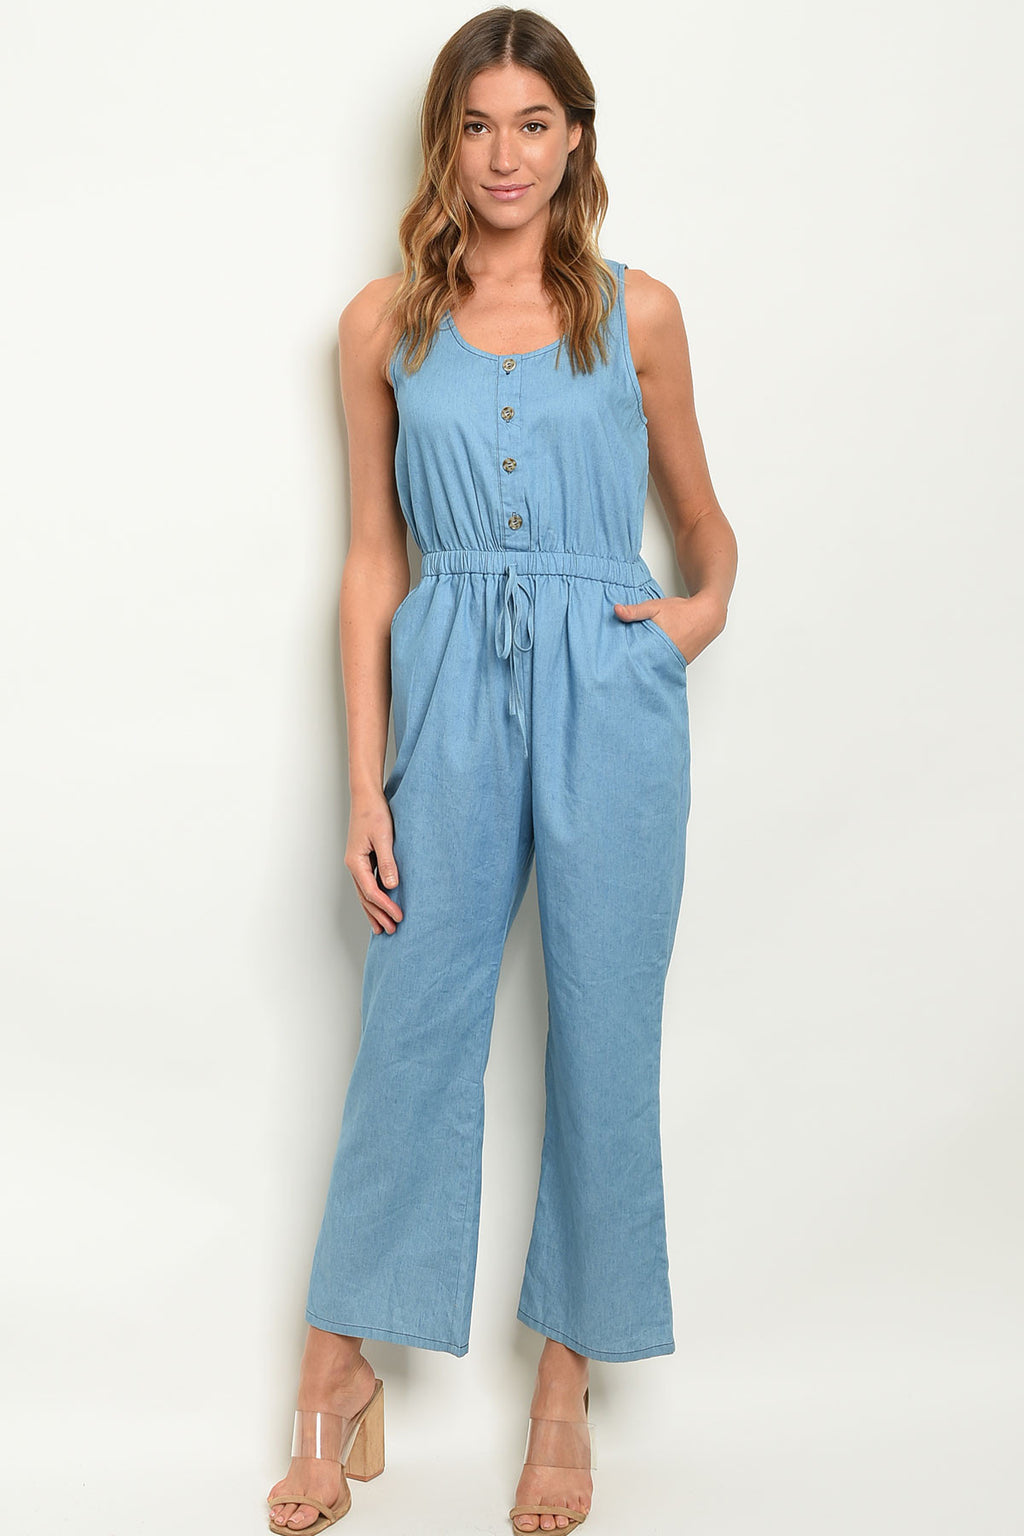 Let's Keep This Casual Denim Jumpsuit